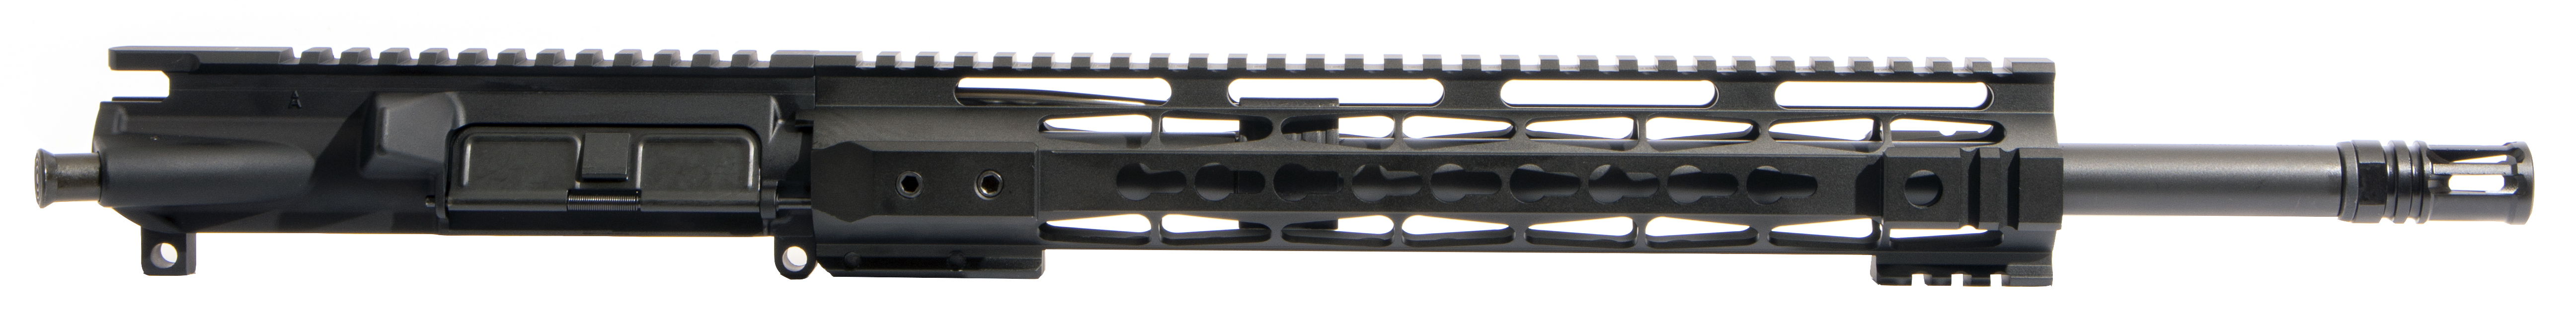 ar-15-upper-assembly-16-300aac-12-cbc-arms-rail